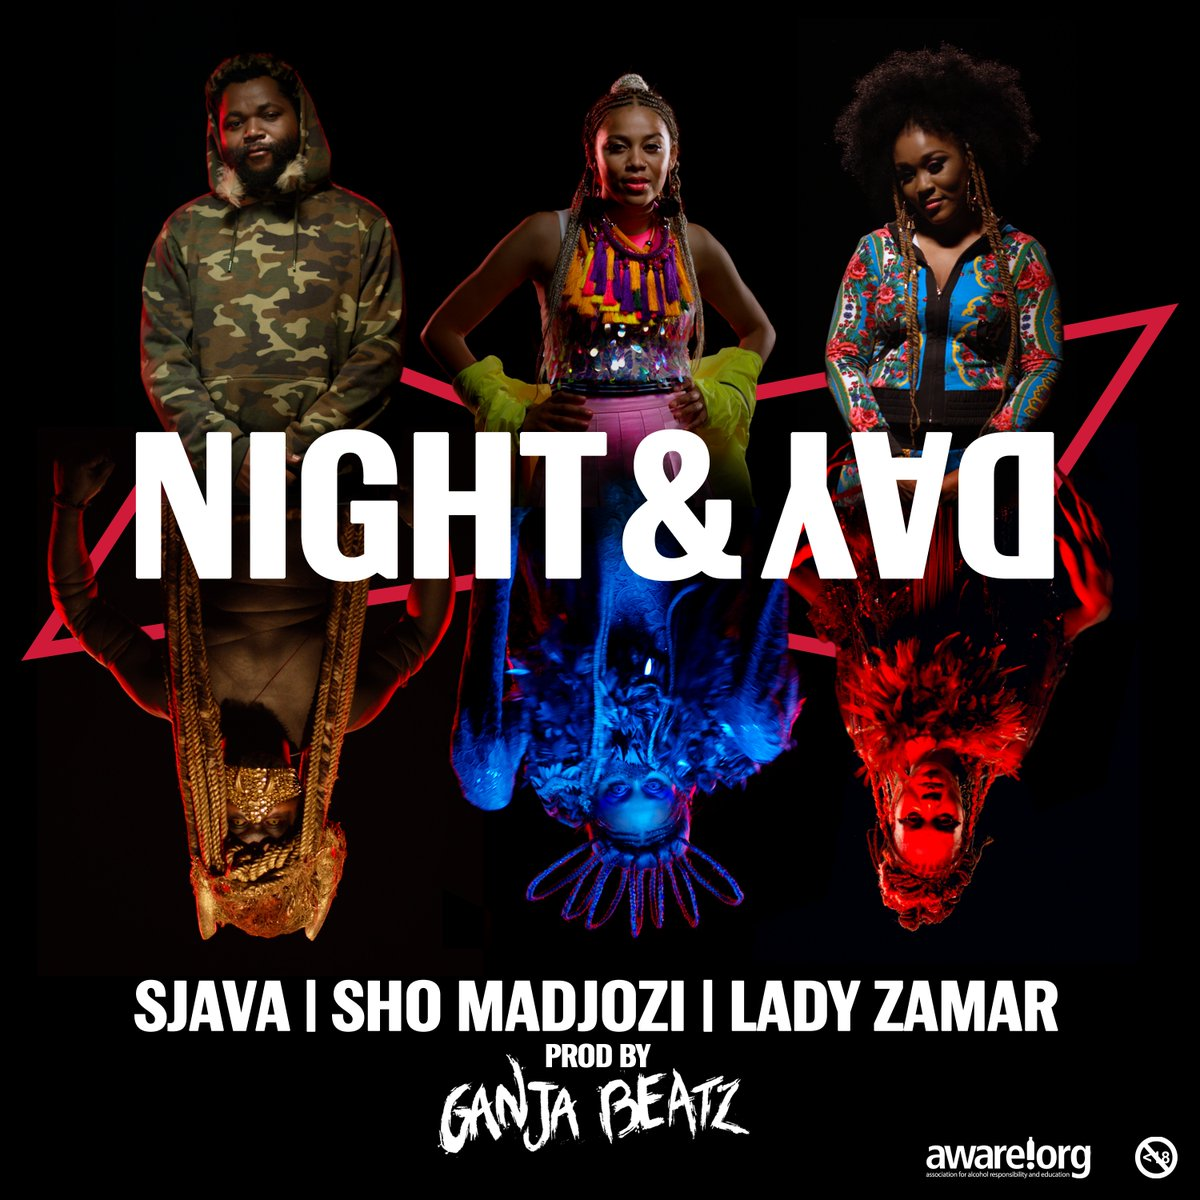 Listen To Sjava, Sho Madjozi & Lady Zamar's New 'Night & Day' Single DqMnZ8kWsAAIEL